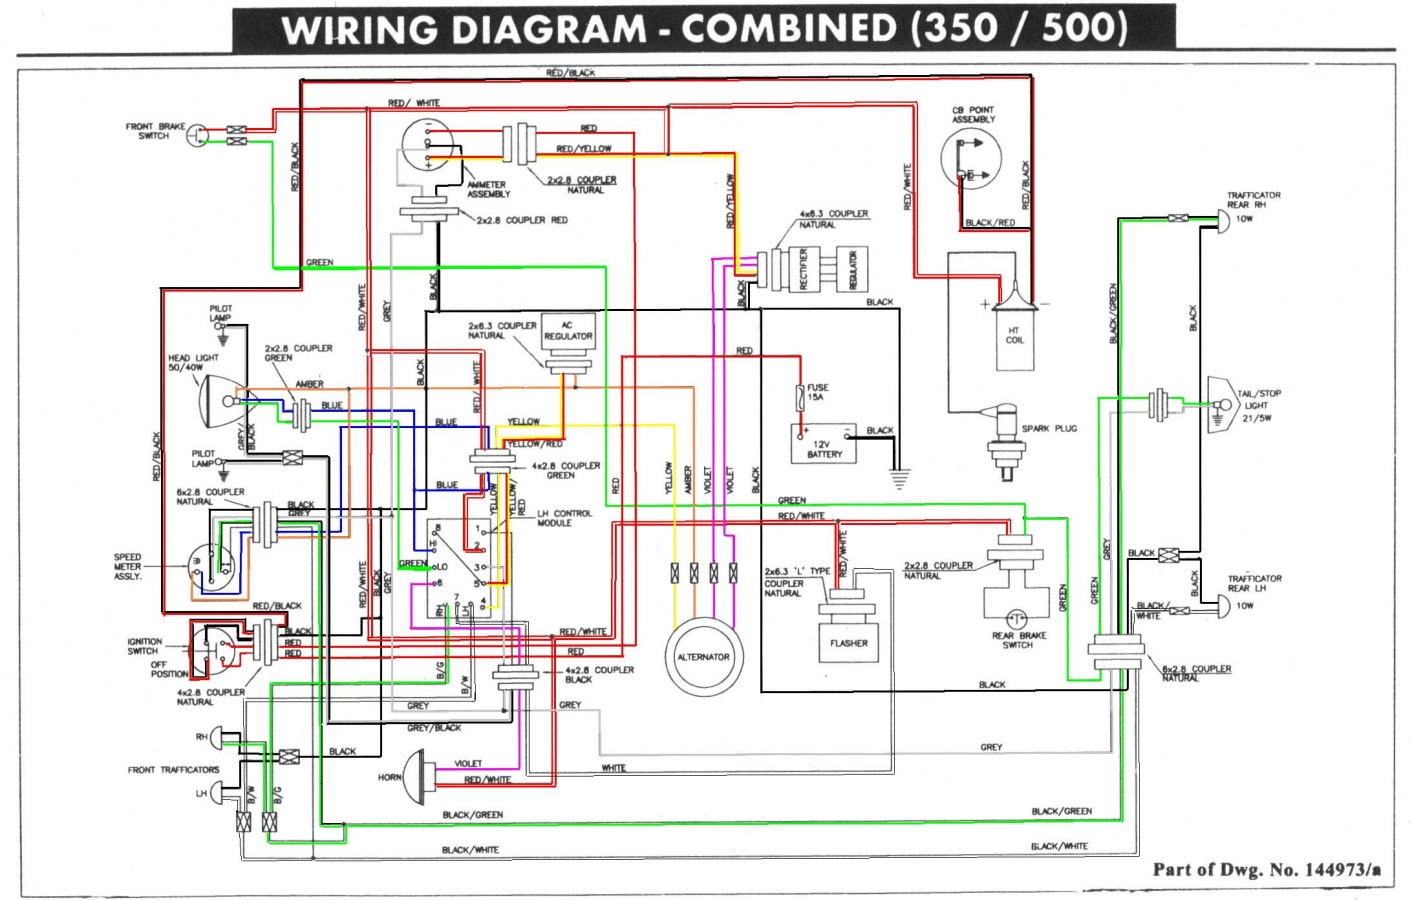 diagrams 875667 royal wiring diagrams royal enfield wiring dragster wiring diagram at gsmx.co